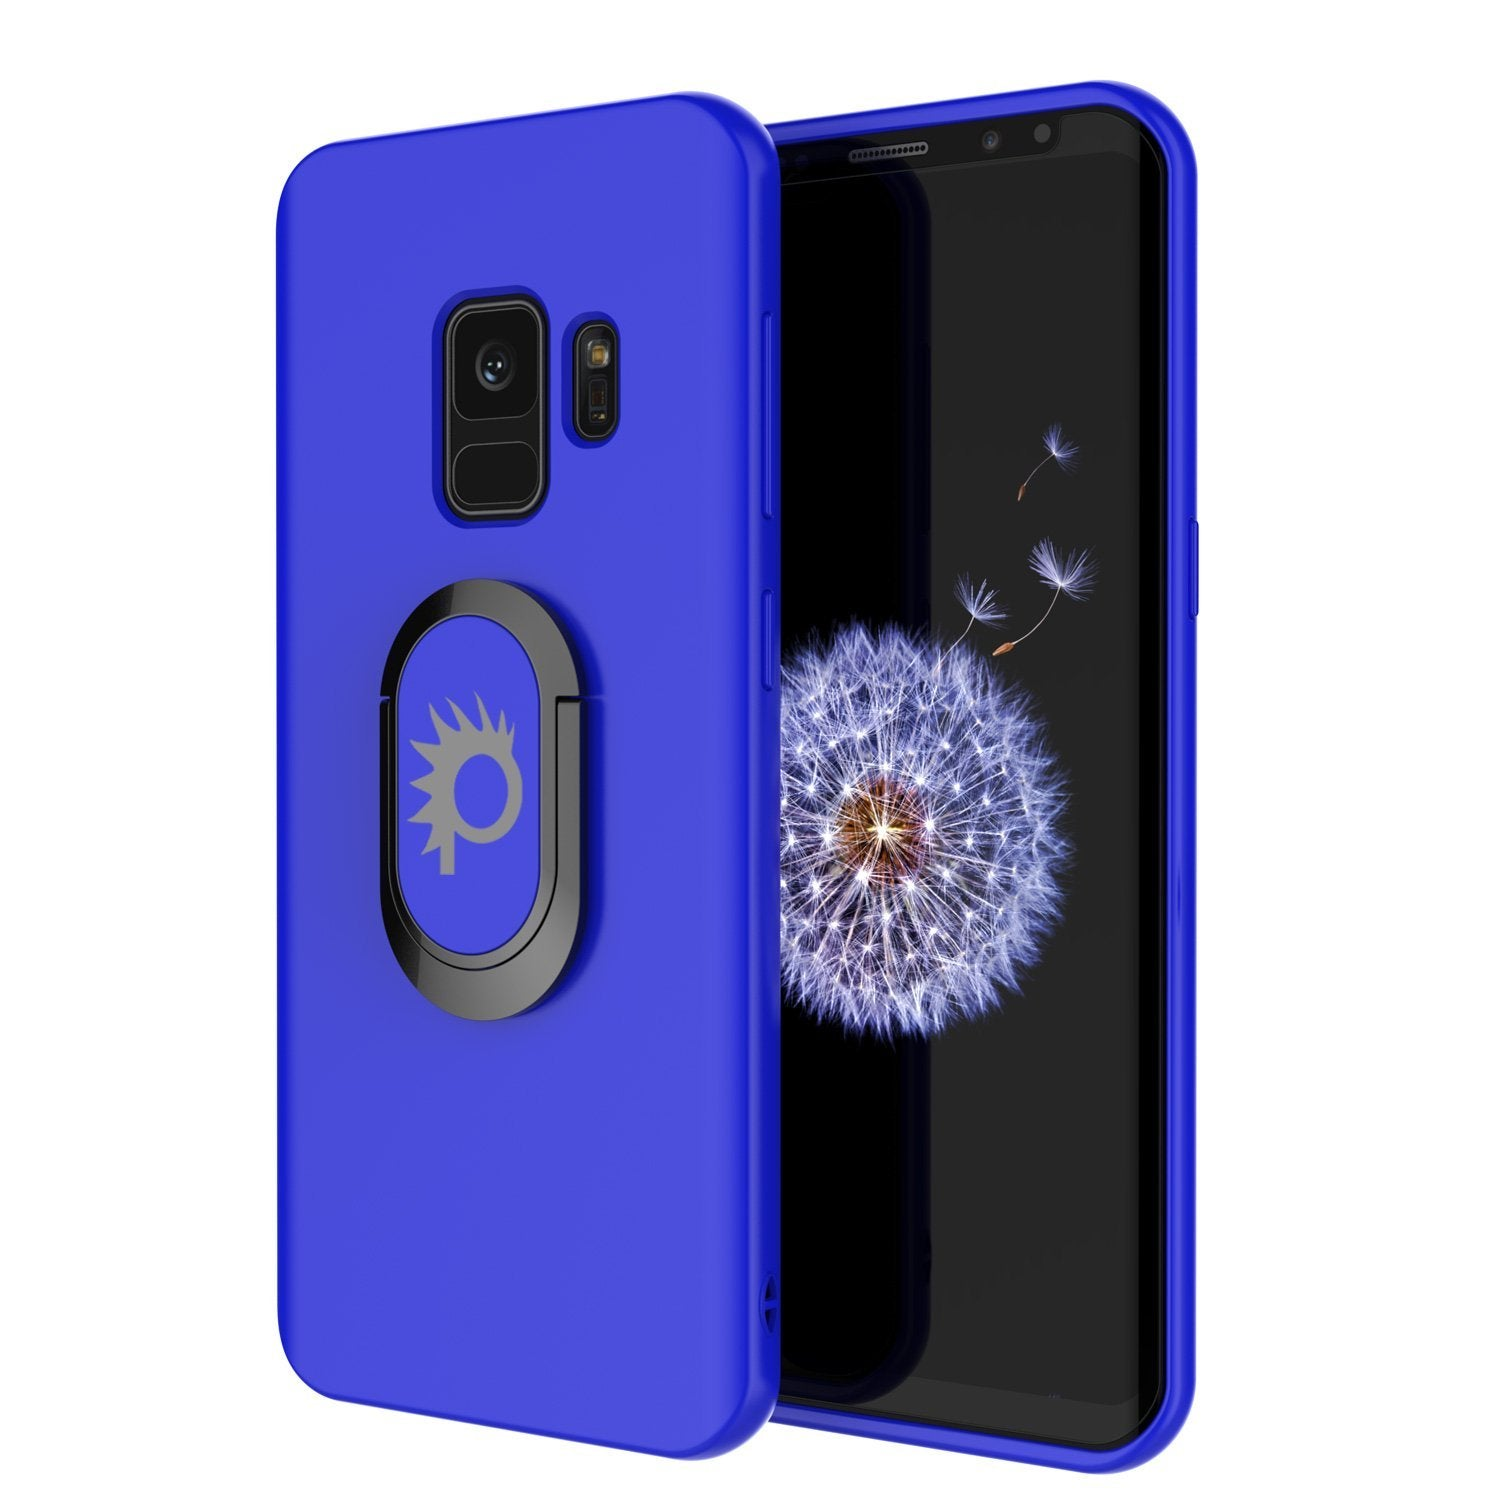 Galaxy S9 Case, Punkcase Magnetix Protective TPU Cover W/ Kickstand, Sceen Protector[Blue]